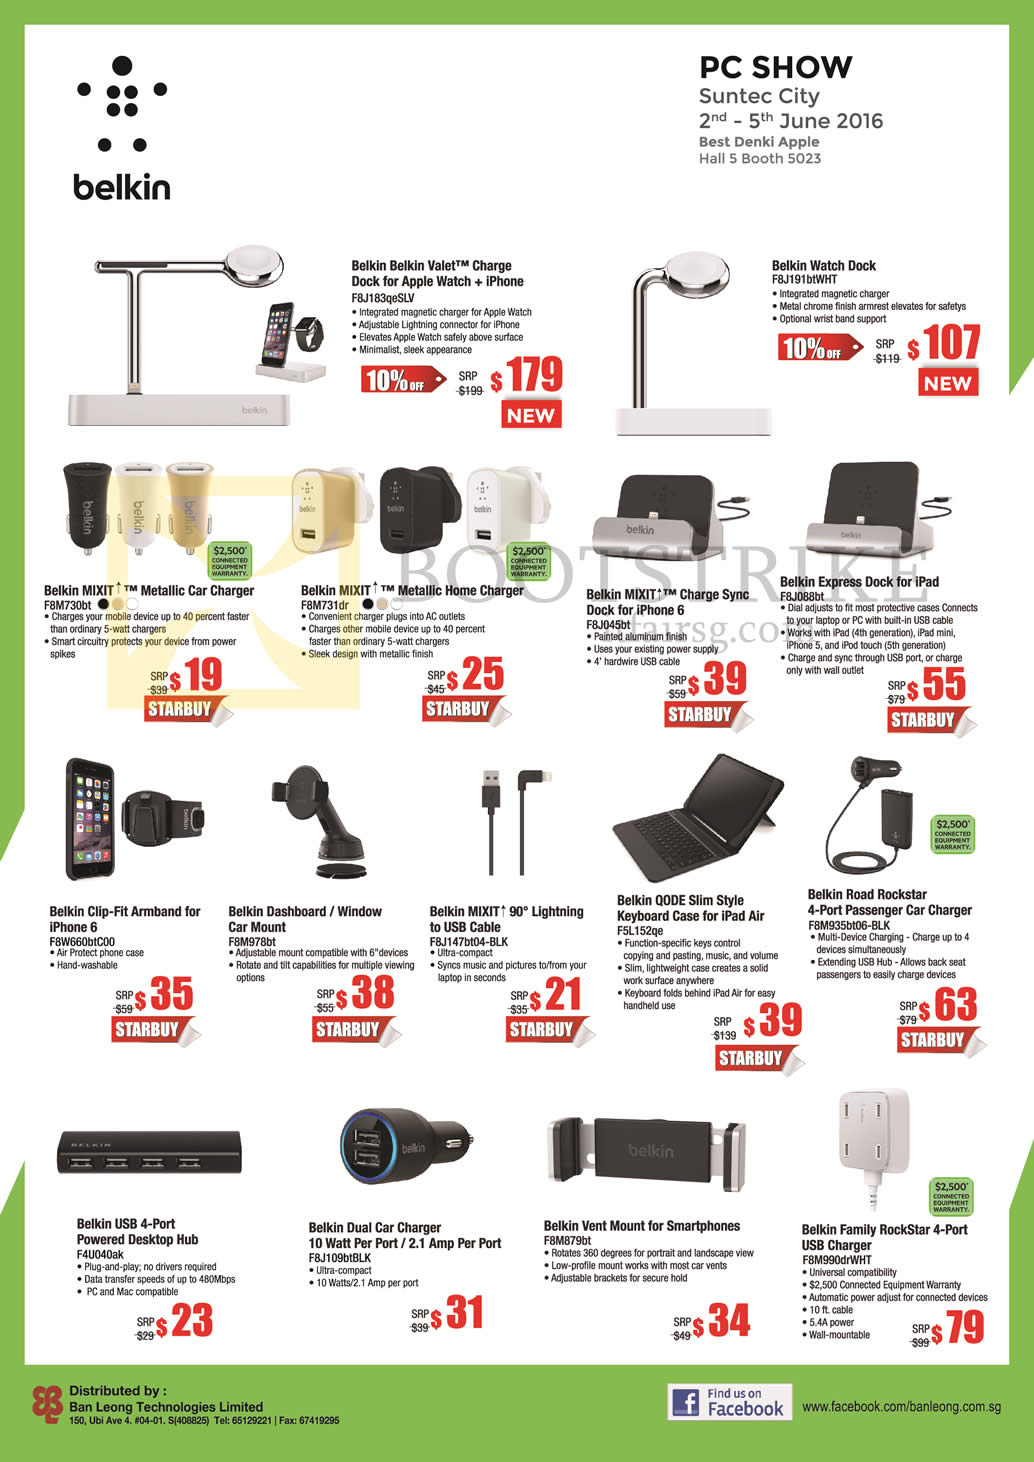 PC SHOW 2016 price list image brochure of Best Denki Belkin Valet Charge, Watch Dock, Mixit Car Charger, Express Dock, Sync Dock, Hub, Cable, Keyboard Case, Lightning USB